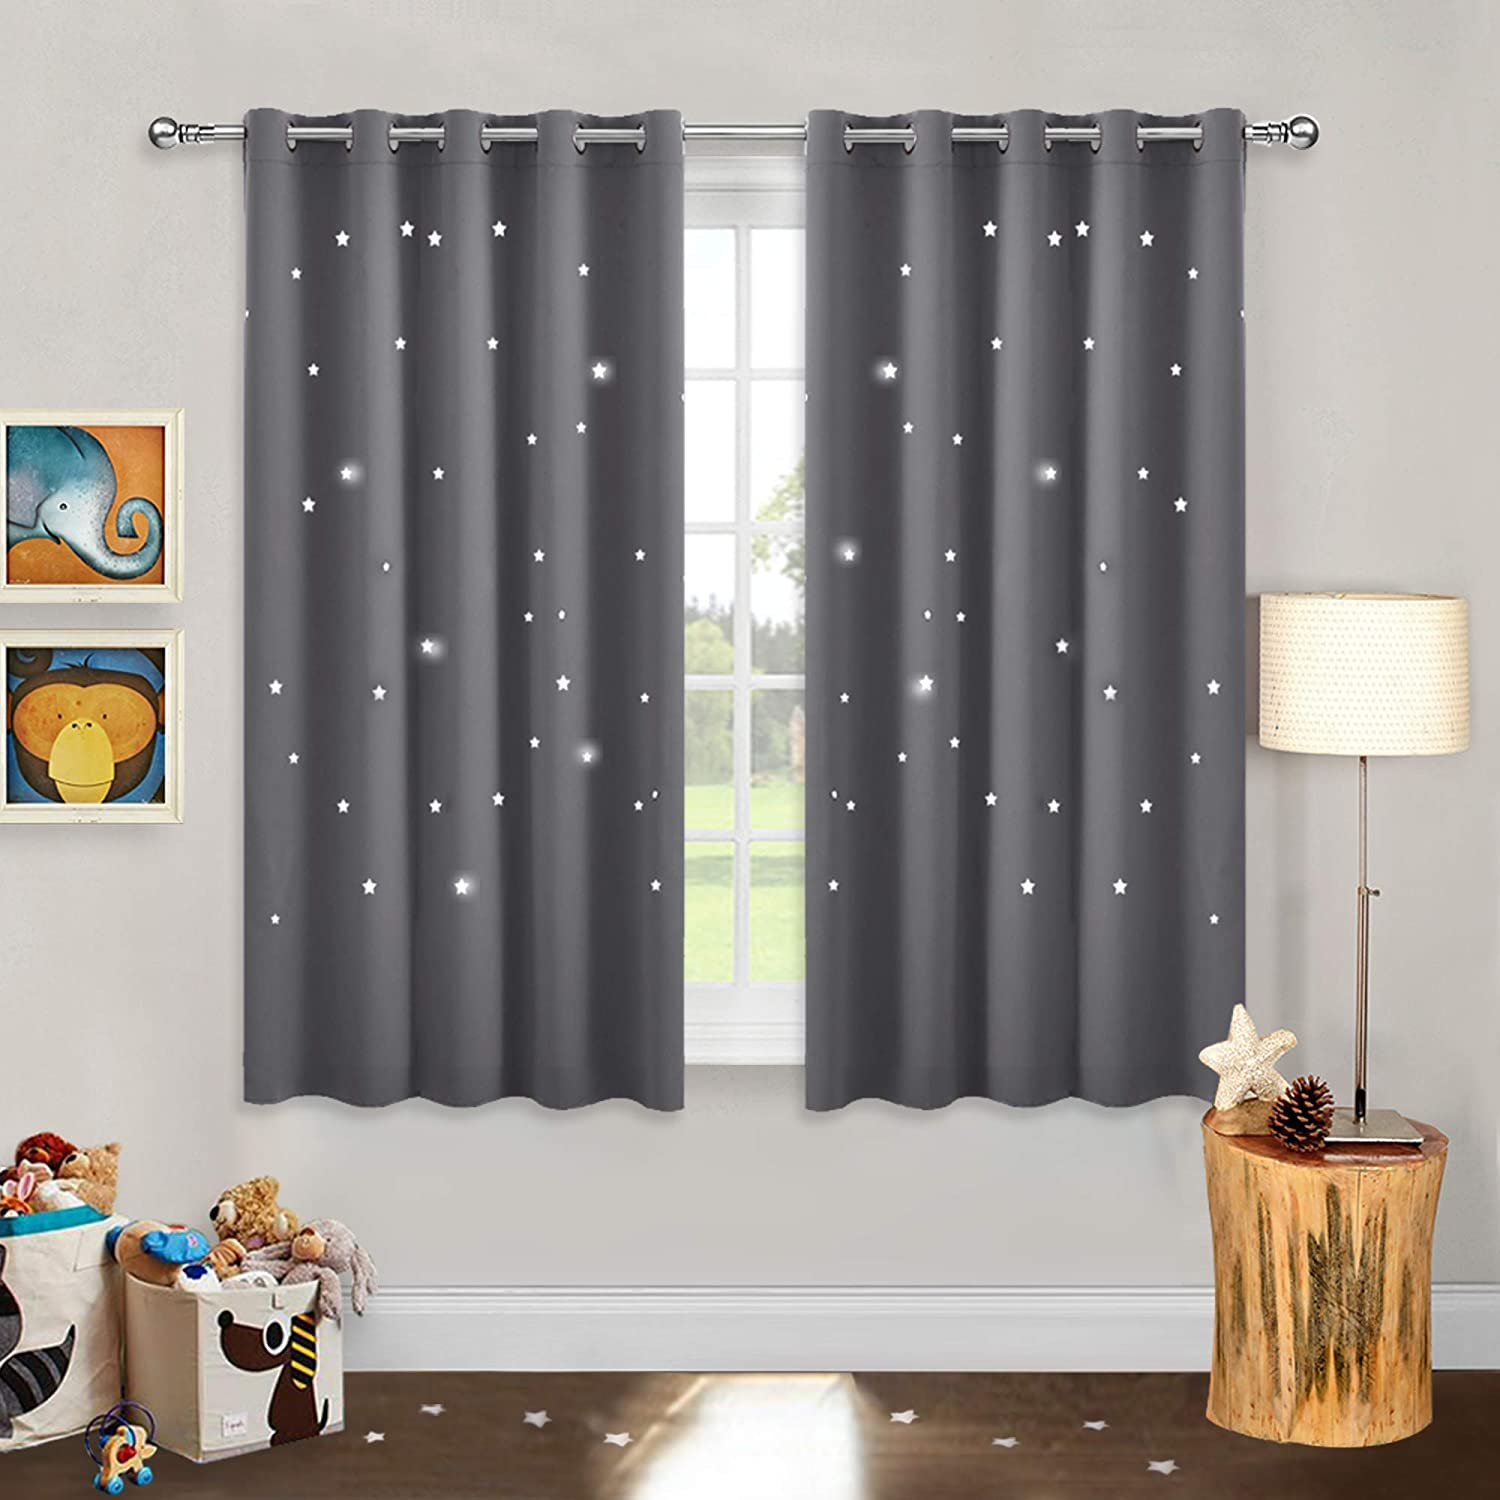 """PONY DANCE Grey Blackout Curtains - Star Curtain Silver Rings Up with Modern Style Wide Window Covering Hollow Out Pattern for Home Decoration, 2 Panels, 66-inch Wide by 54-inch Long, Grey 2x W 66"""" X L 54"""" Hollow Stars   Grey"""